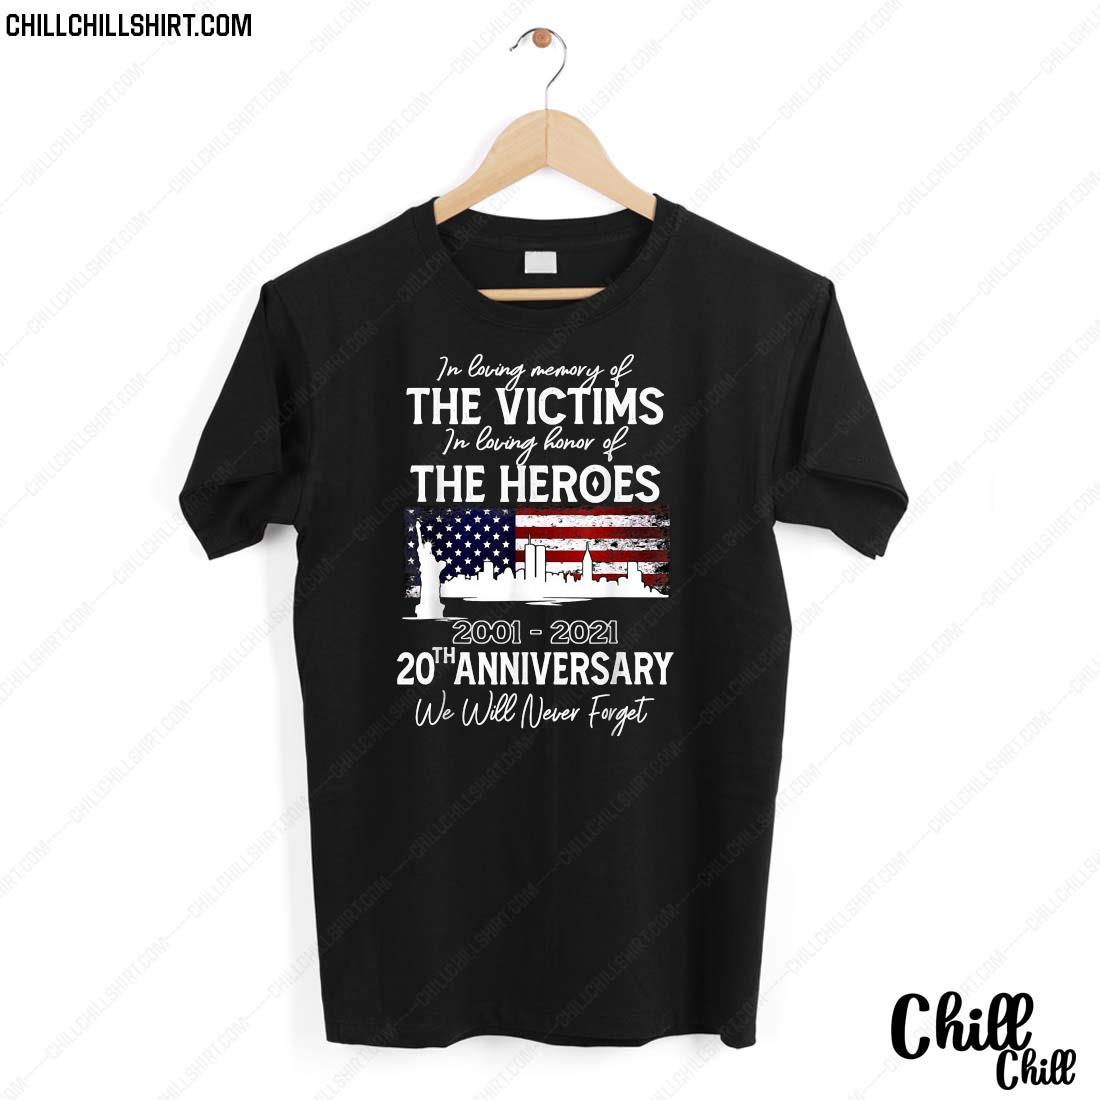 20th Anniversary 09.1101 Never Forget Shirt